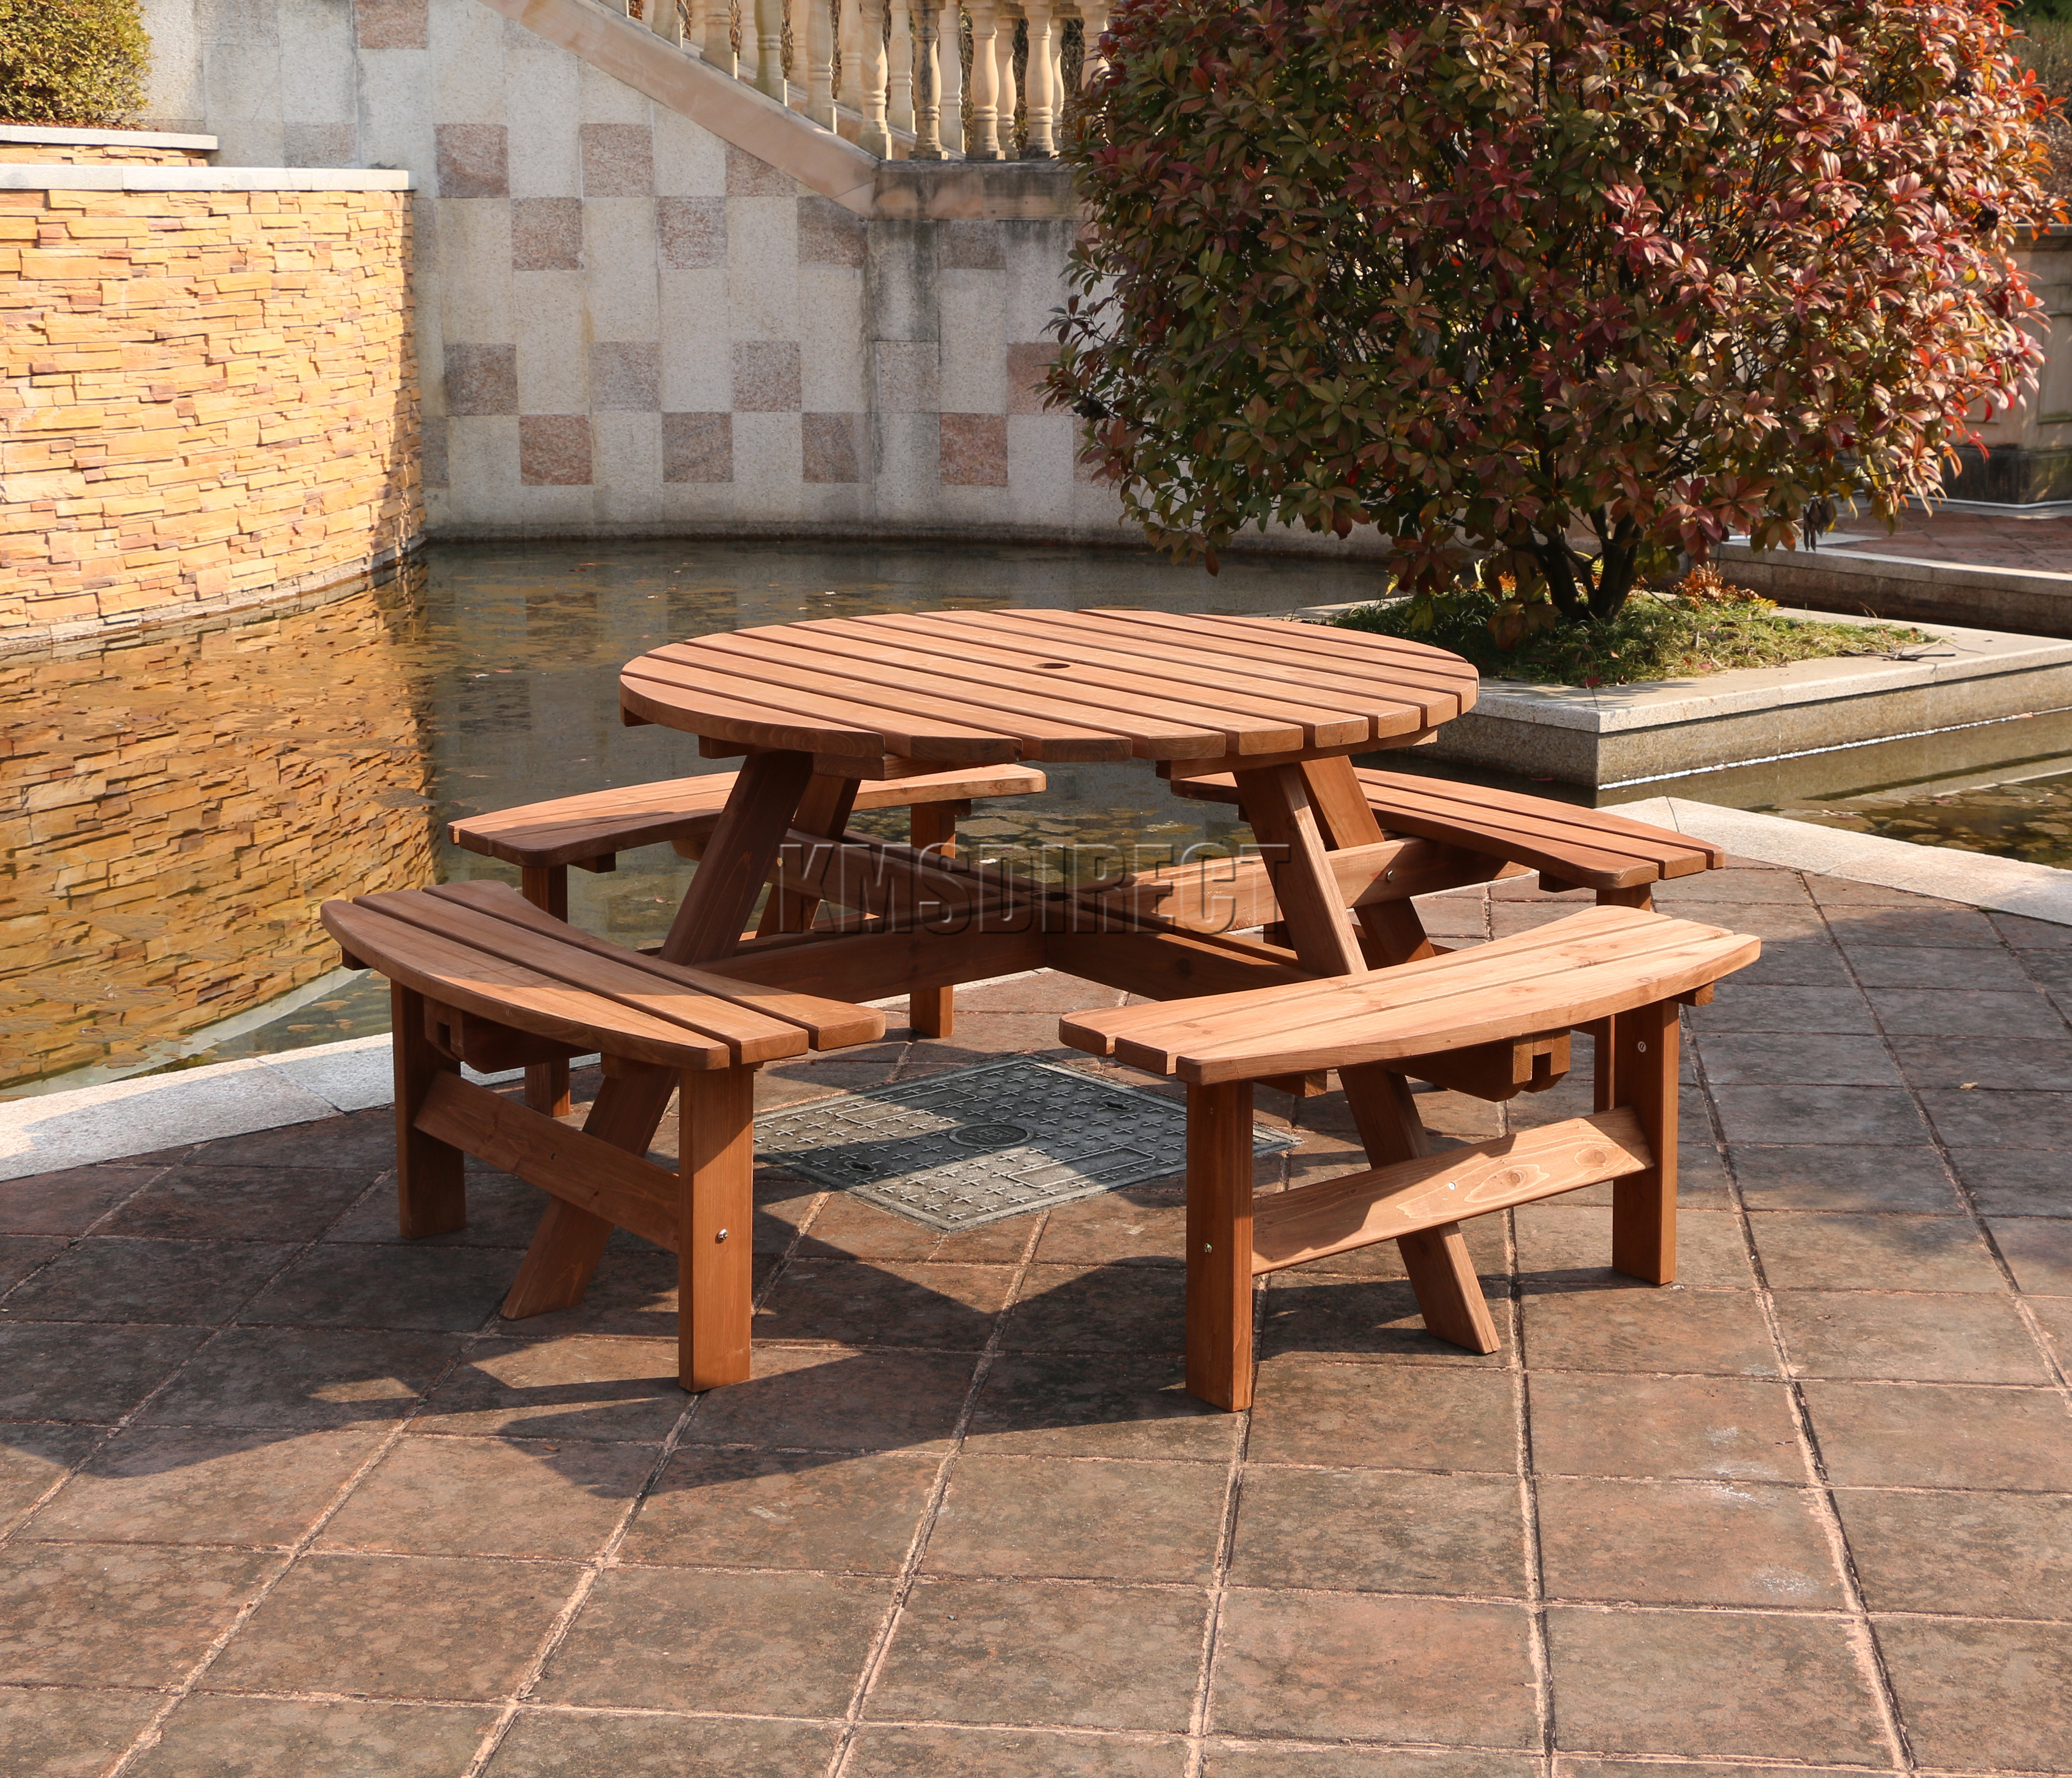 Round wood patio table with benches patio designs garden patio 8 seater wooden pub bench round picnic table furniture watchthetrailerfo